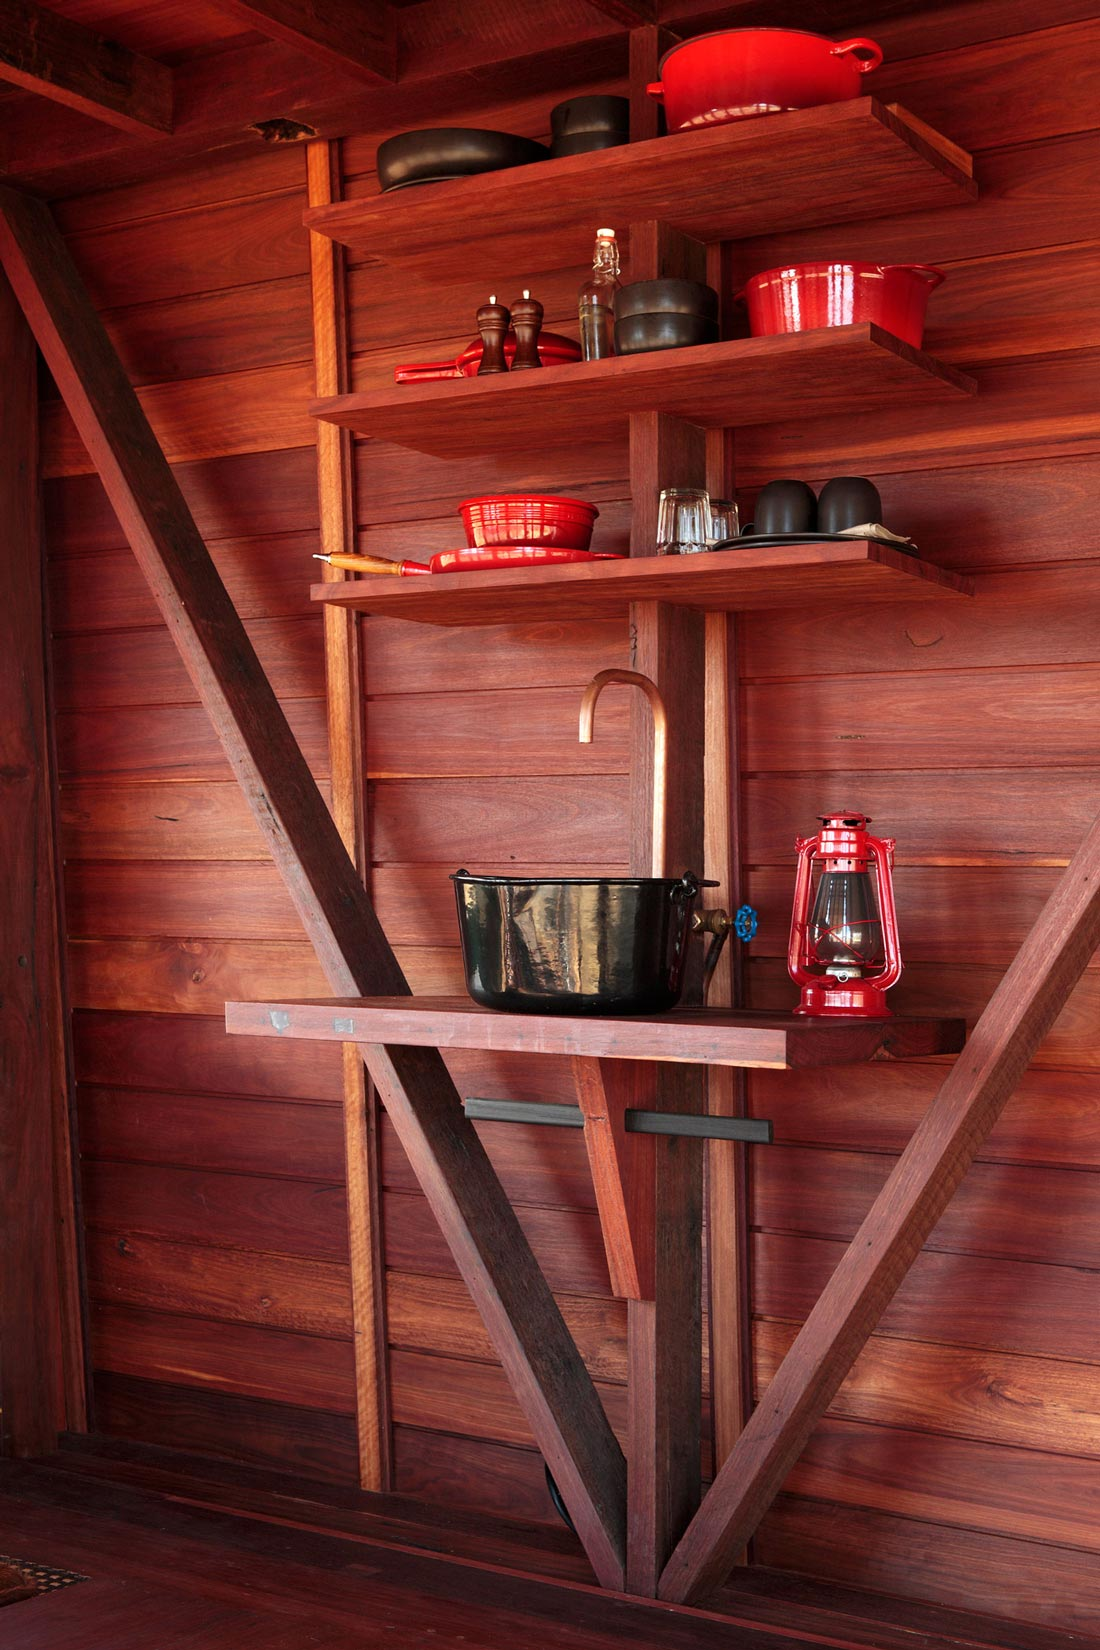 Compact Kitchen, Sink, Mudgee Tower, New South Wales, Australia